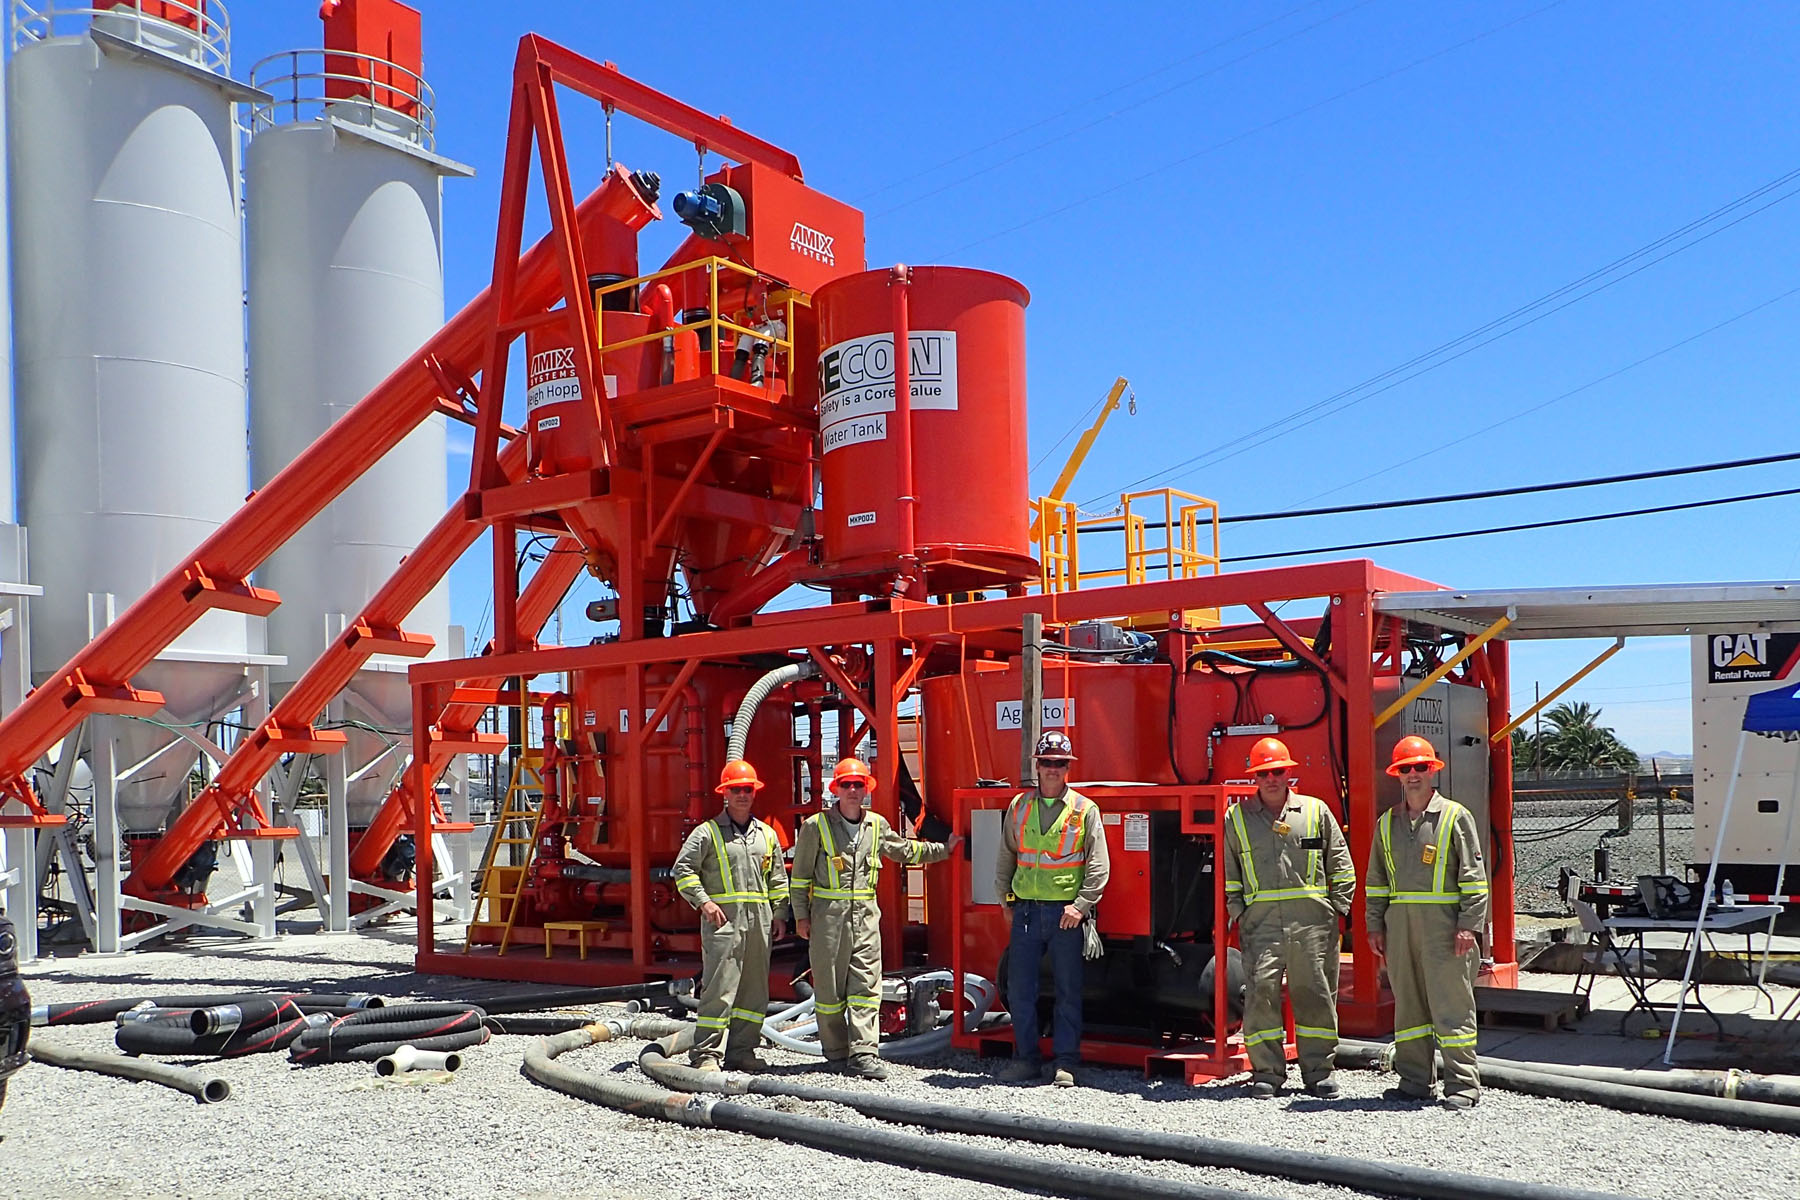 AGP-HURRICANE grout mixing and pumping systems